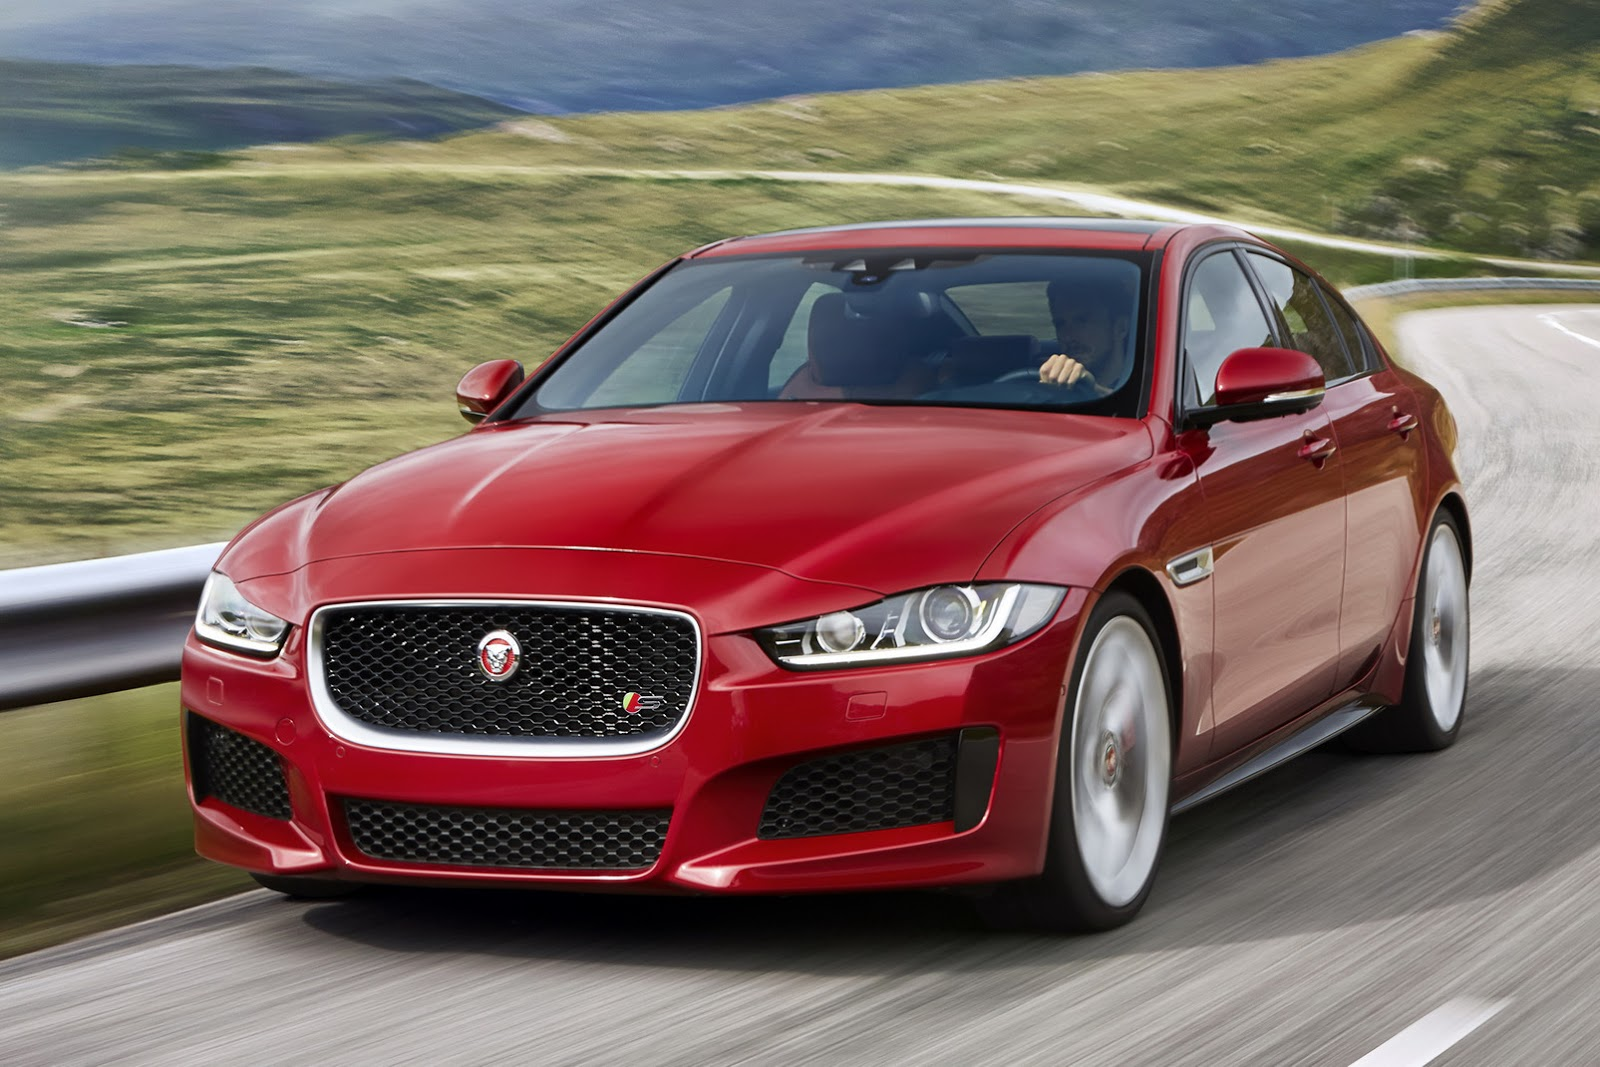 New 2016 Jaguar XE officially revealed Images and details (40)